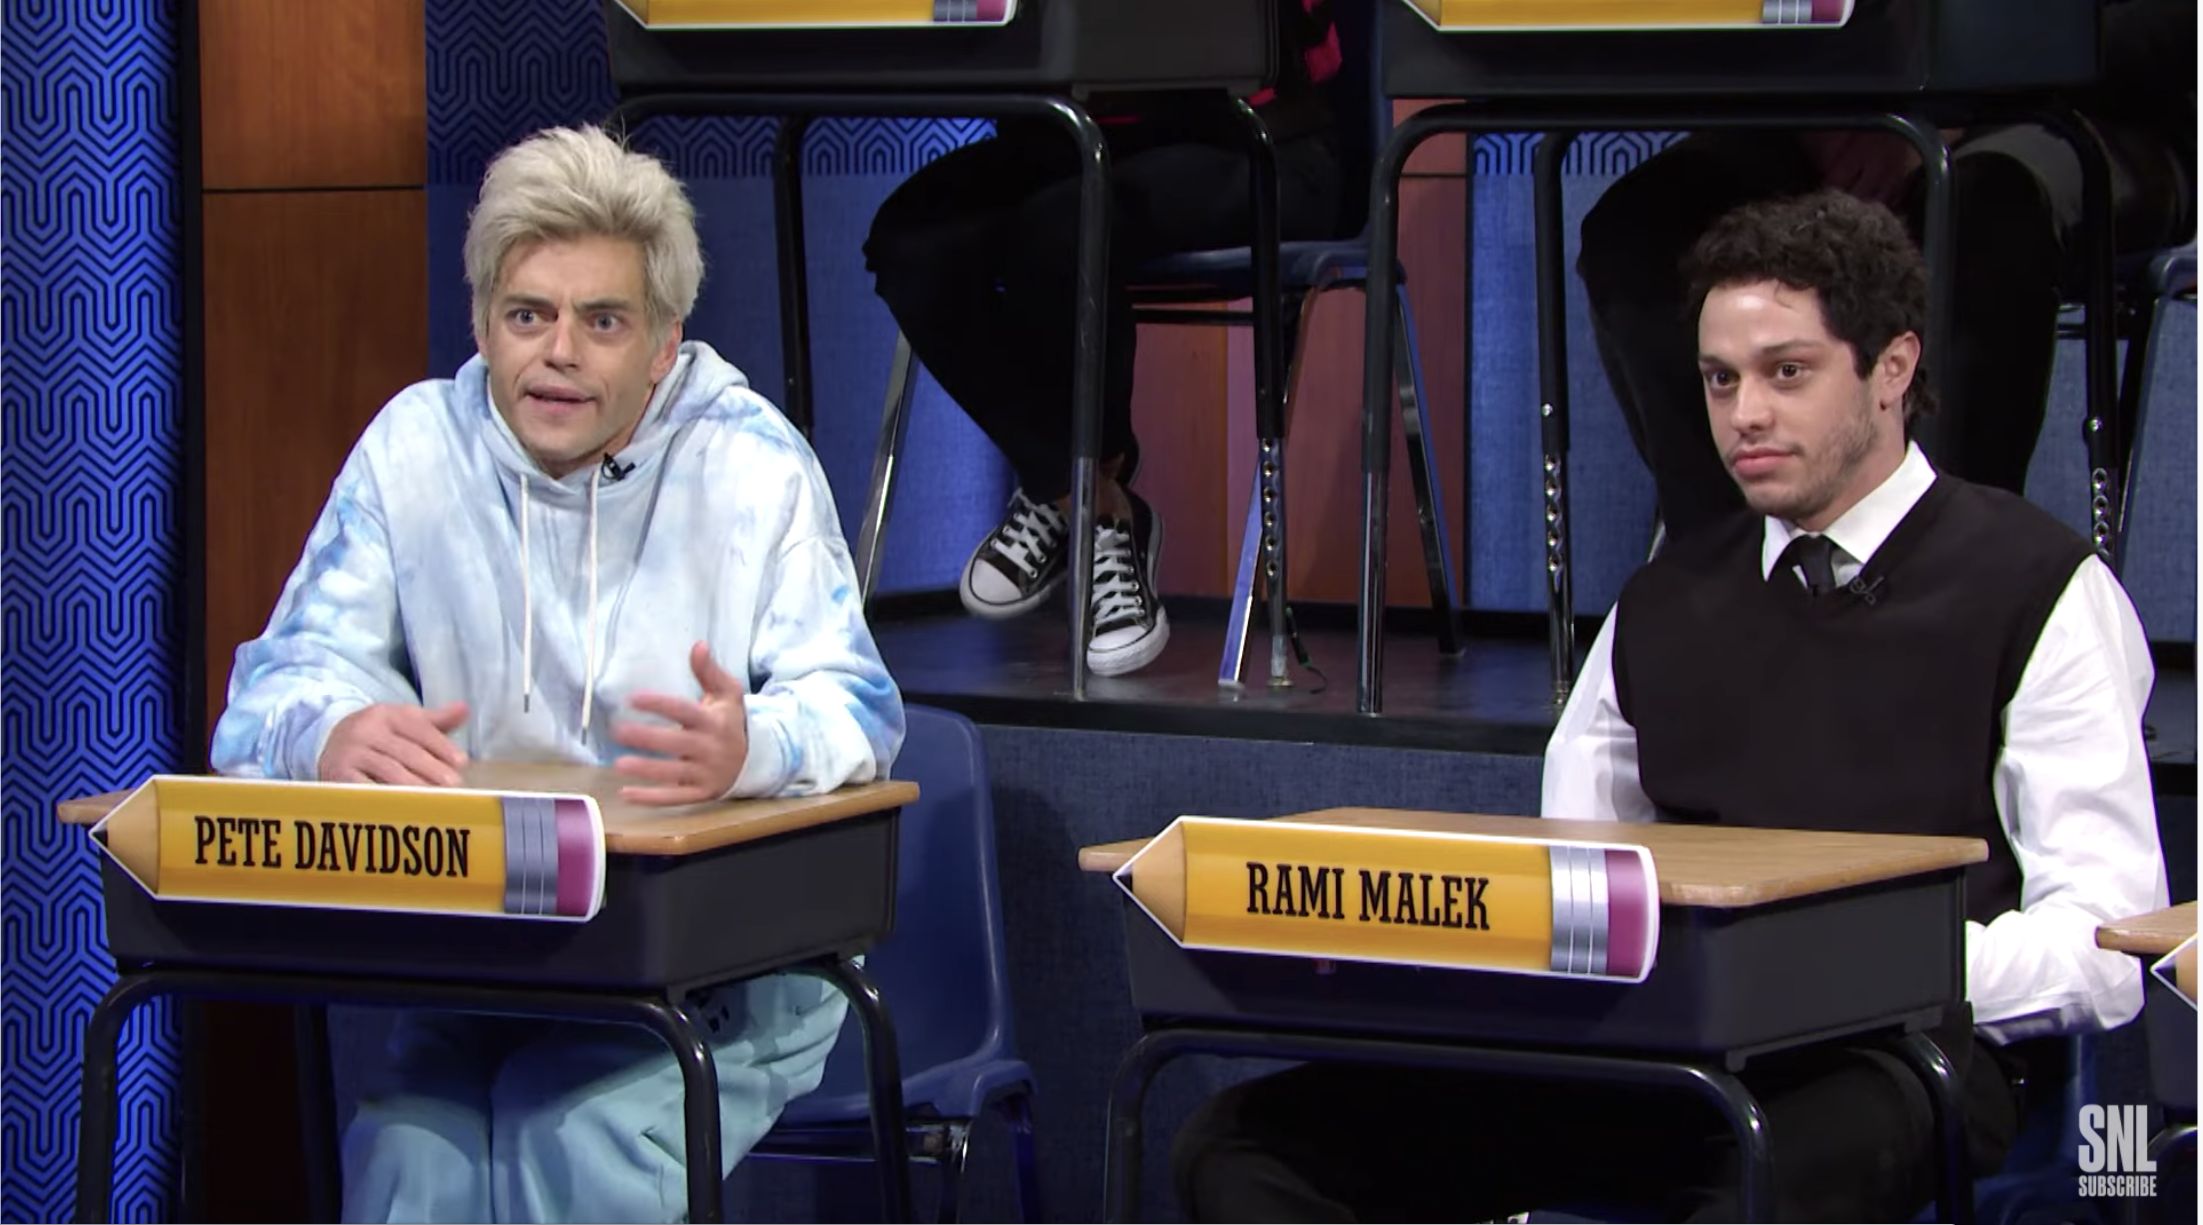 Rami Malek & Pete Davidson Impersonate Each Other On 'Saturday Night Live'